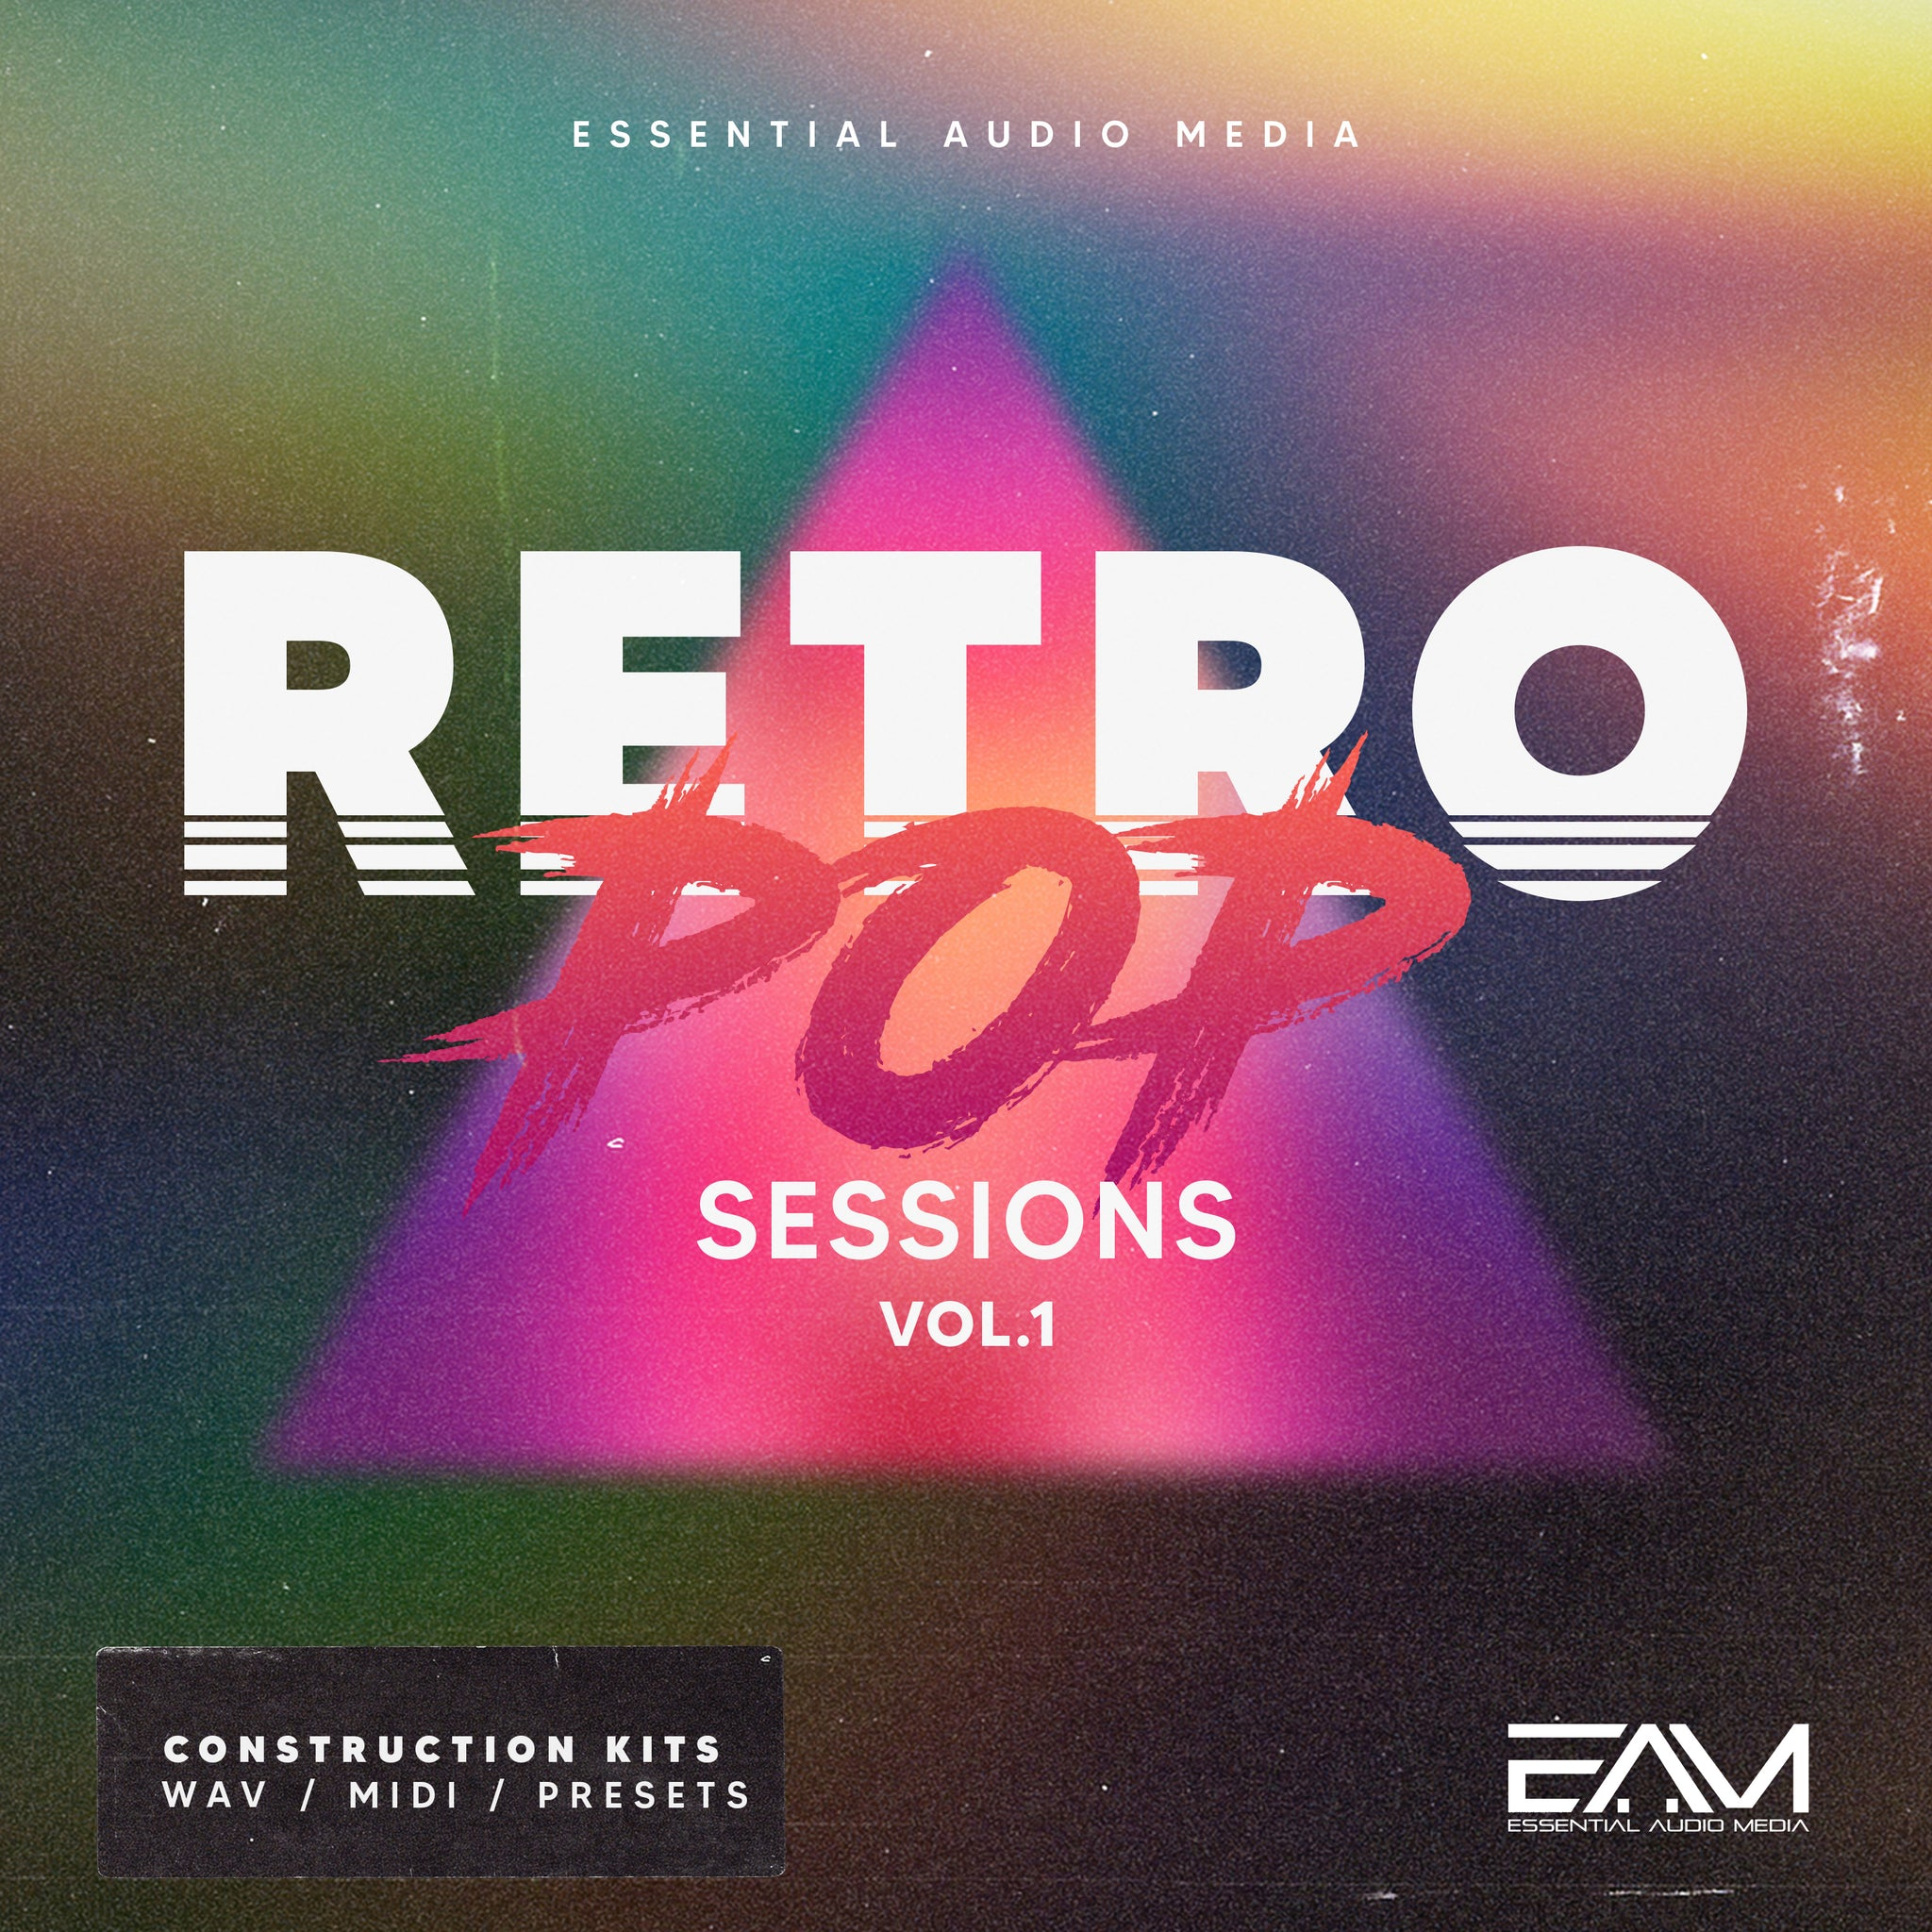 Retro Pop Sessions Vol.1